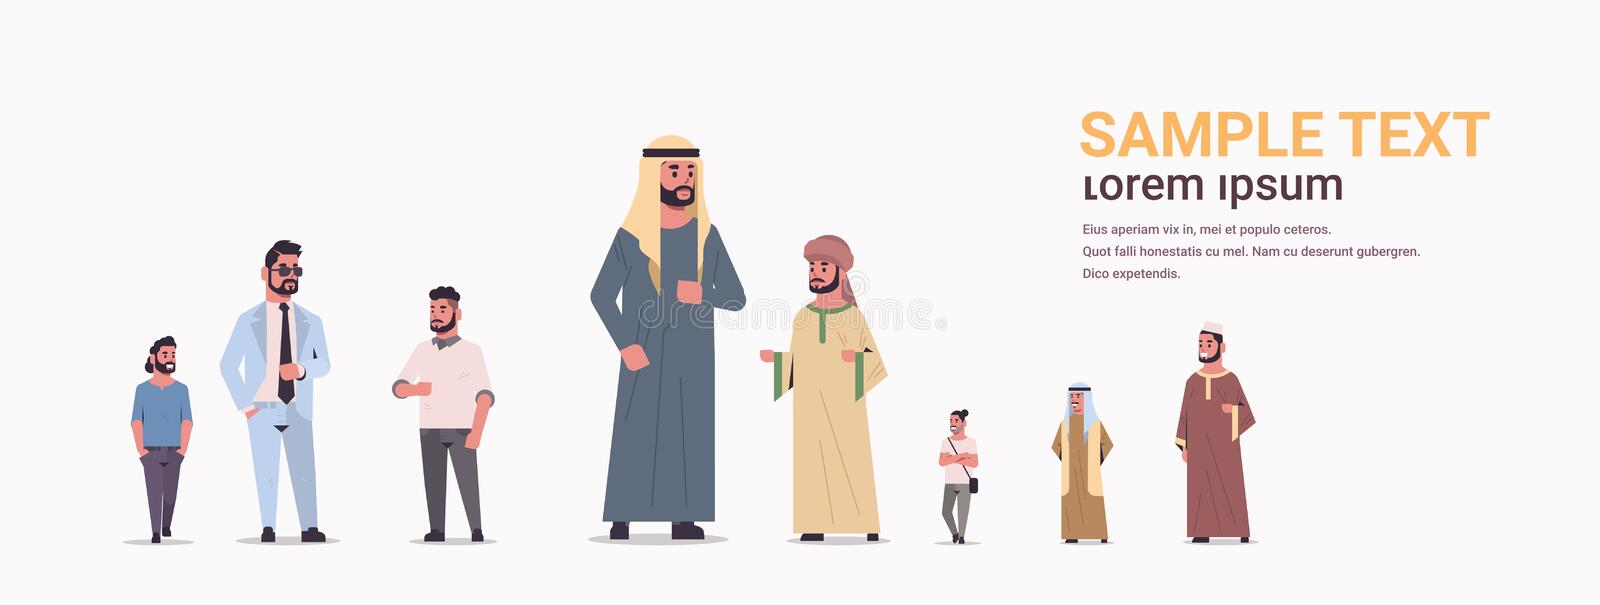 Different arabic men group standing together arab businessmen wearing traditional clothes male arabian cartoon stock illustration